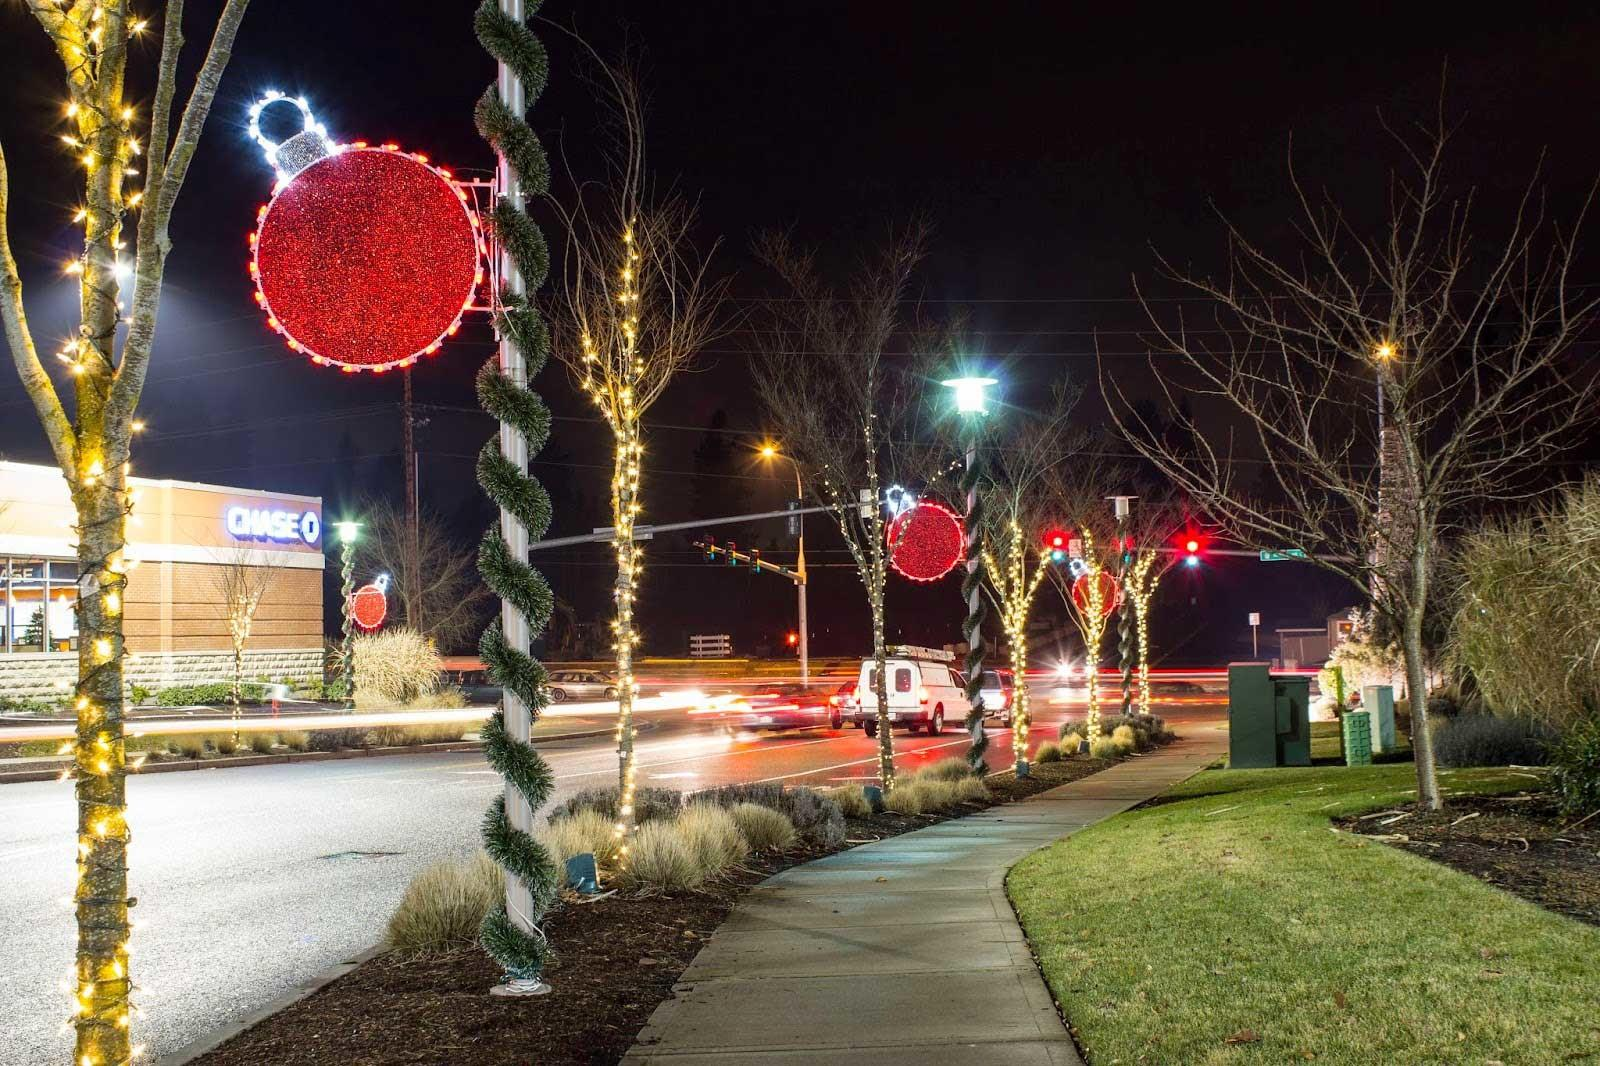 Commercial Christmas Decorations Light Pole Banners